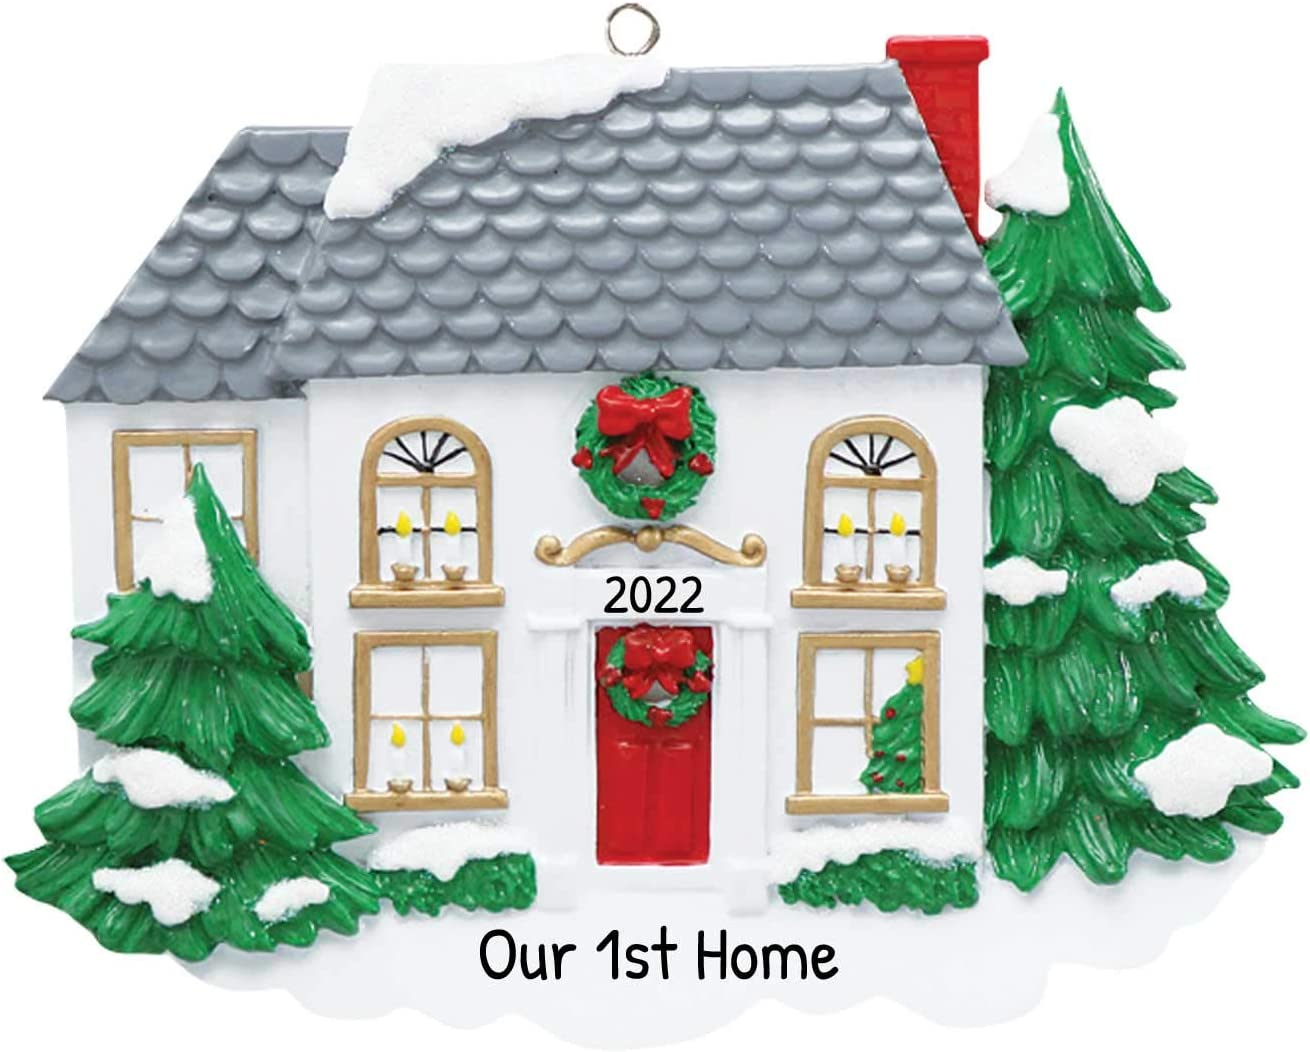 2020 White House Red Christmas Trees Amazon.com: Personalized Victorian House Christmas Tree Ornament